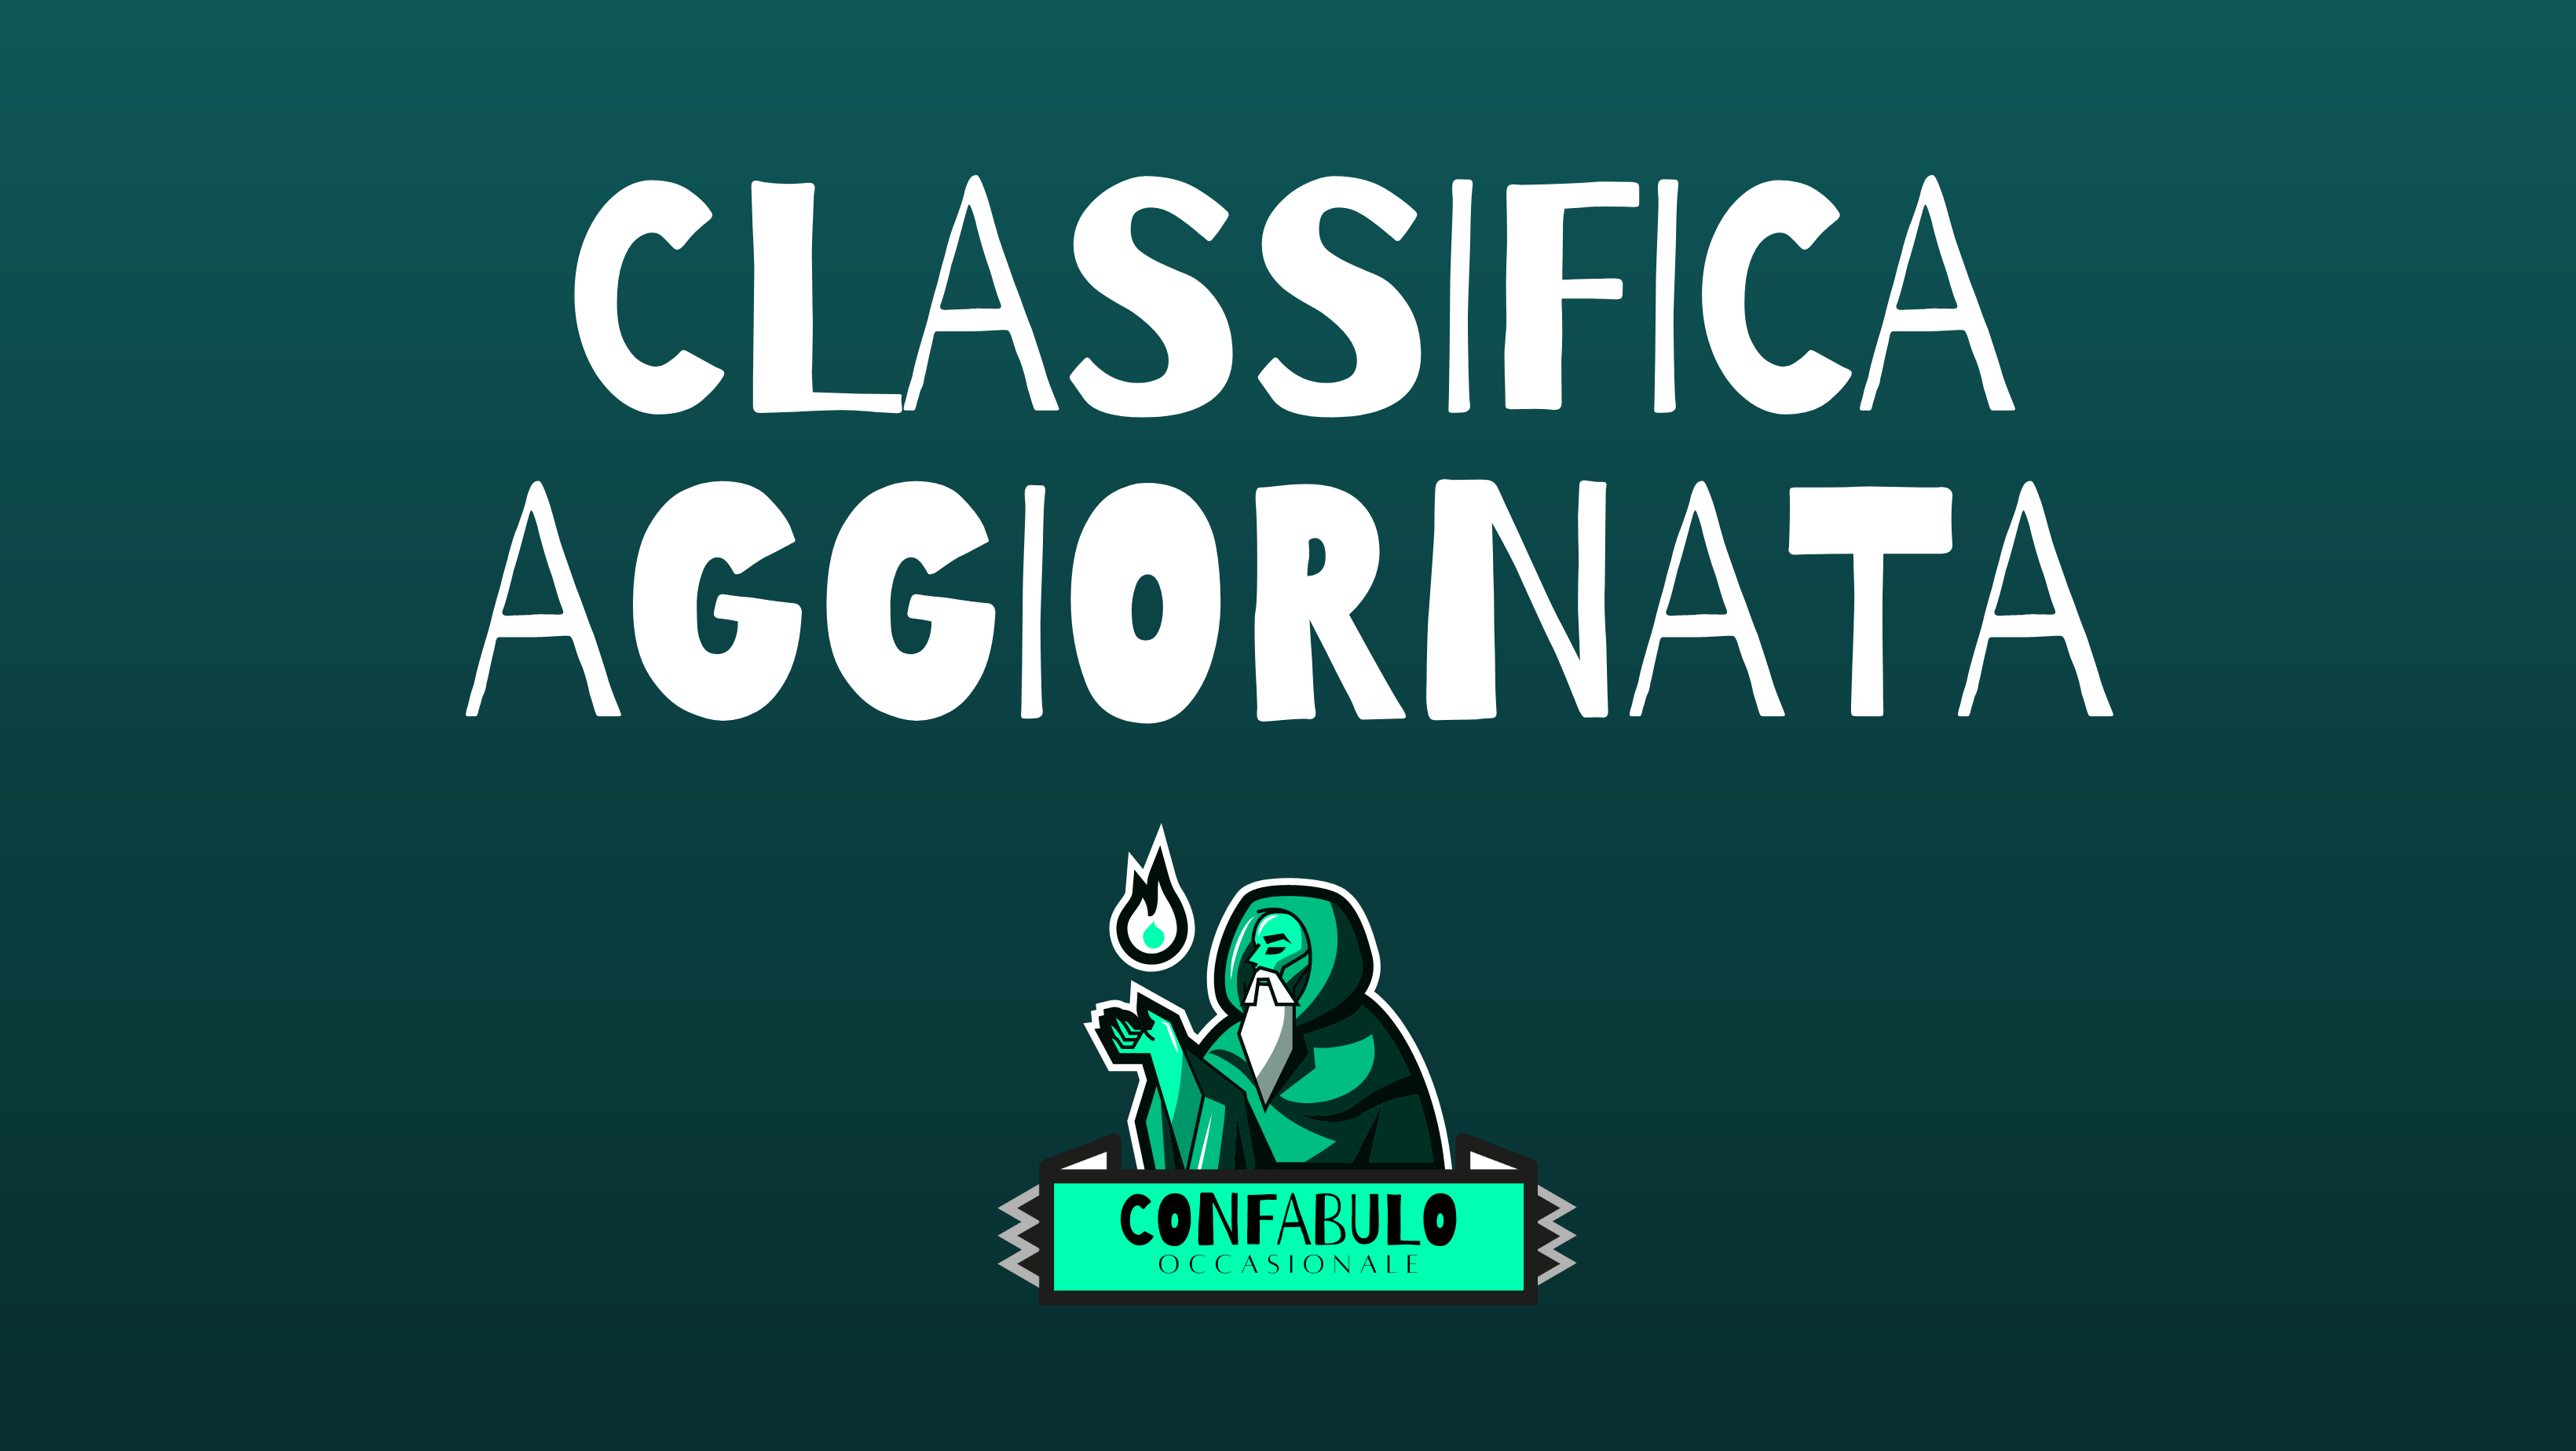 Confabulo Occasionale G1G2